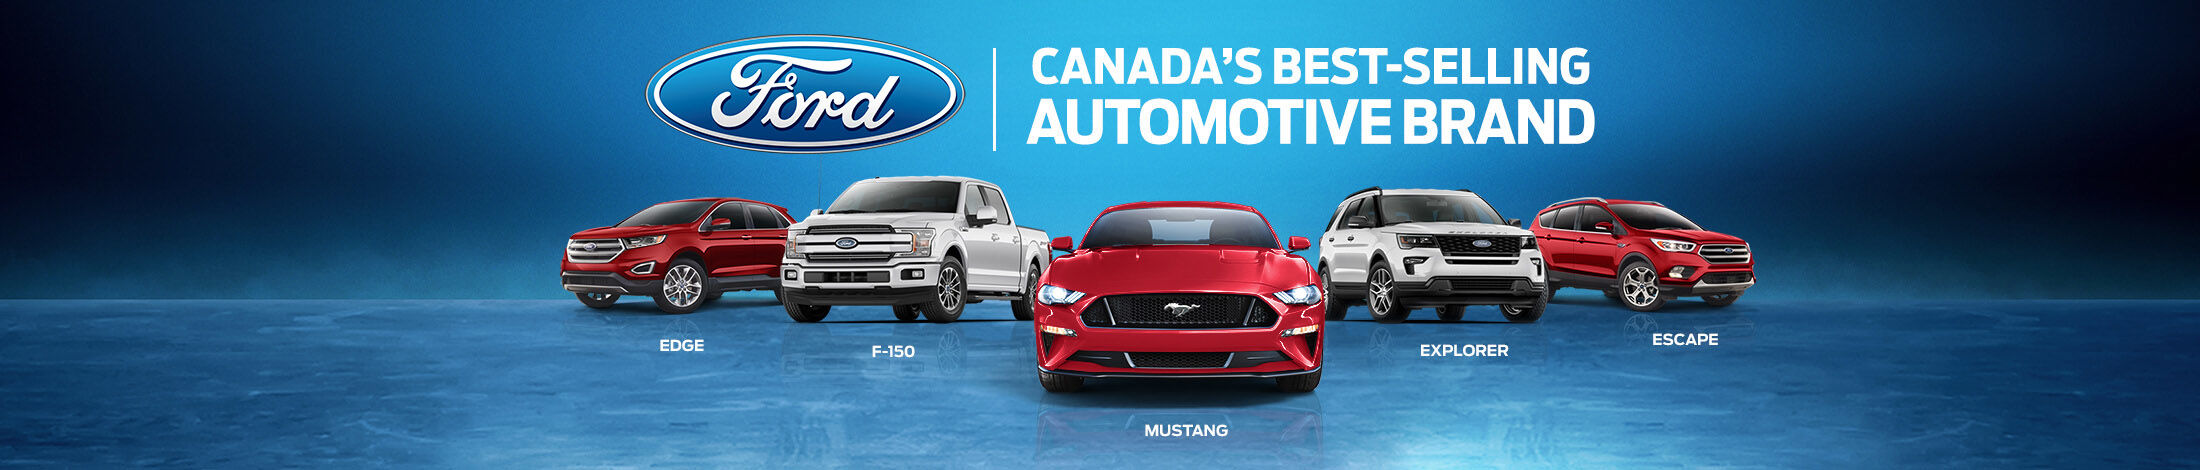 Ford | Canada's best-selling automotive brand